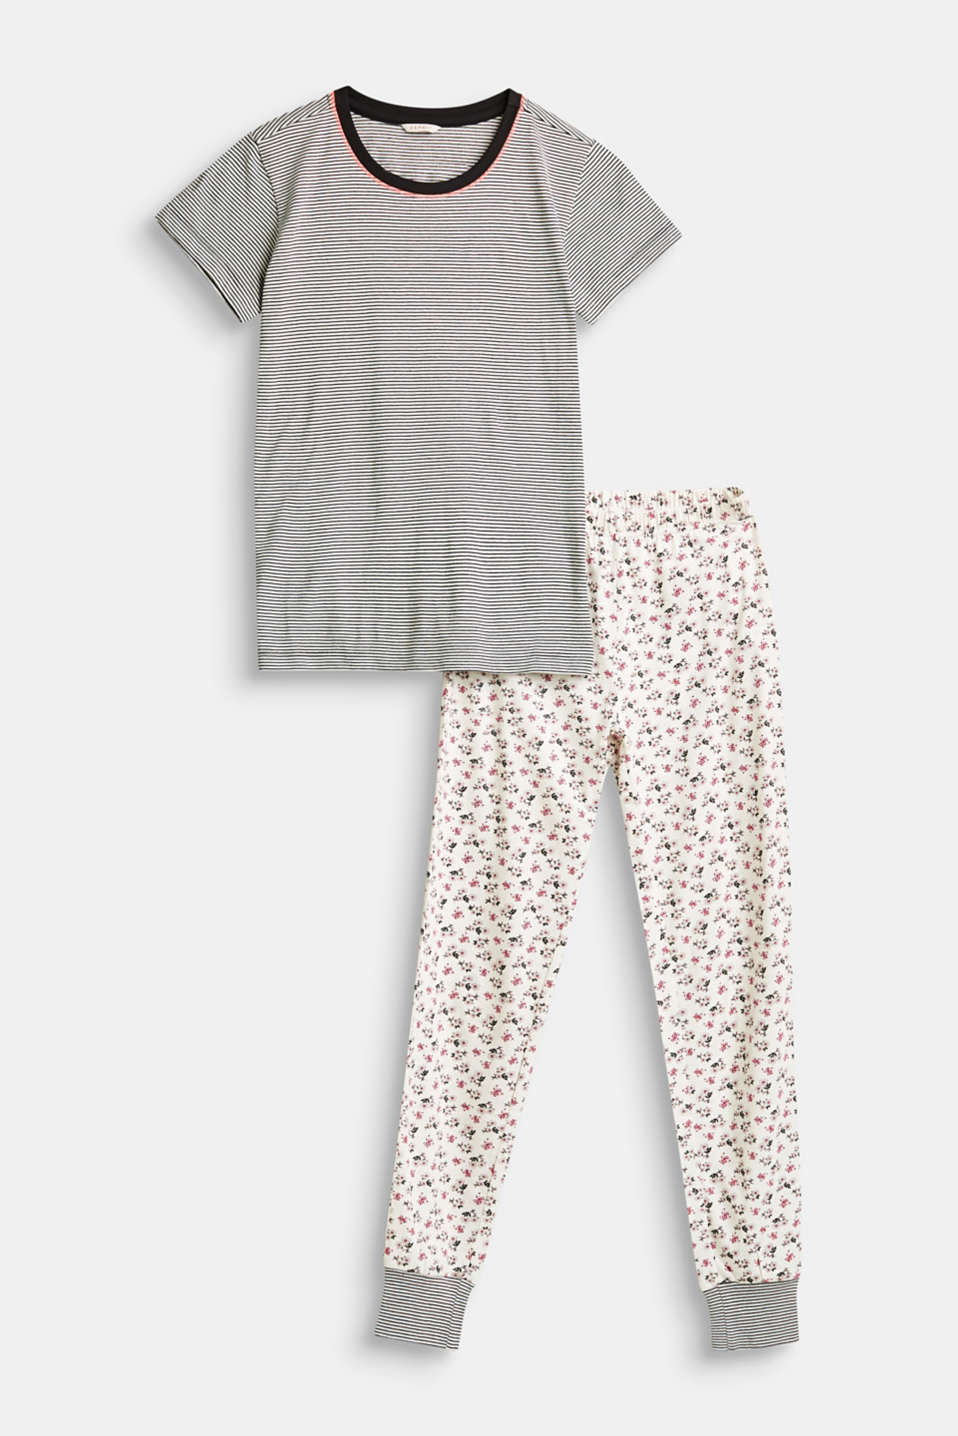 Pretty flowers meet up with sporty stripes: these soft jersey pyjamas made of pure cotton combine exceptional comfort with a cute look.